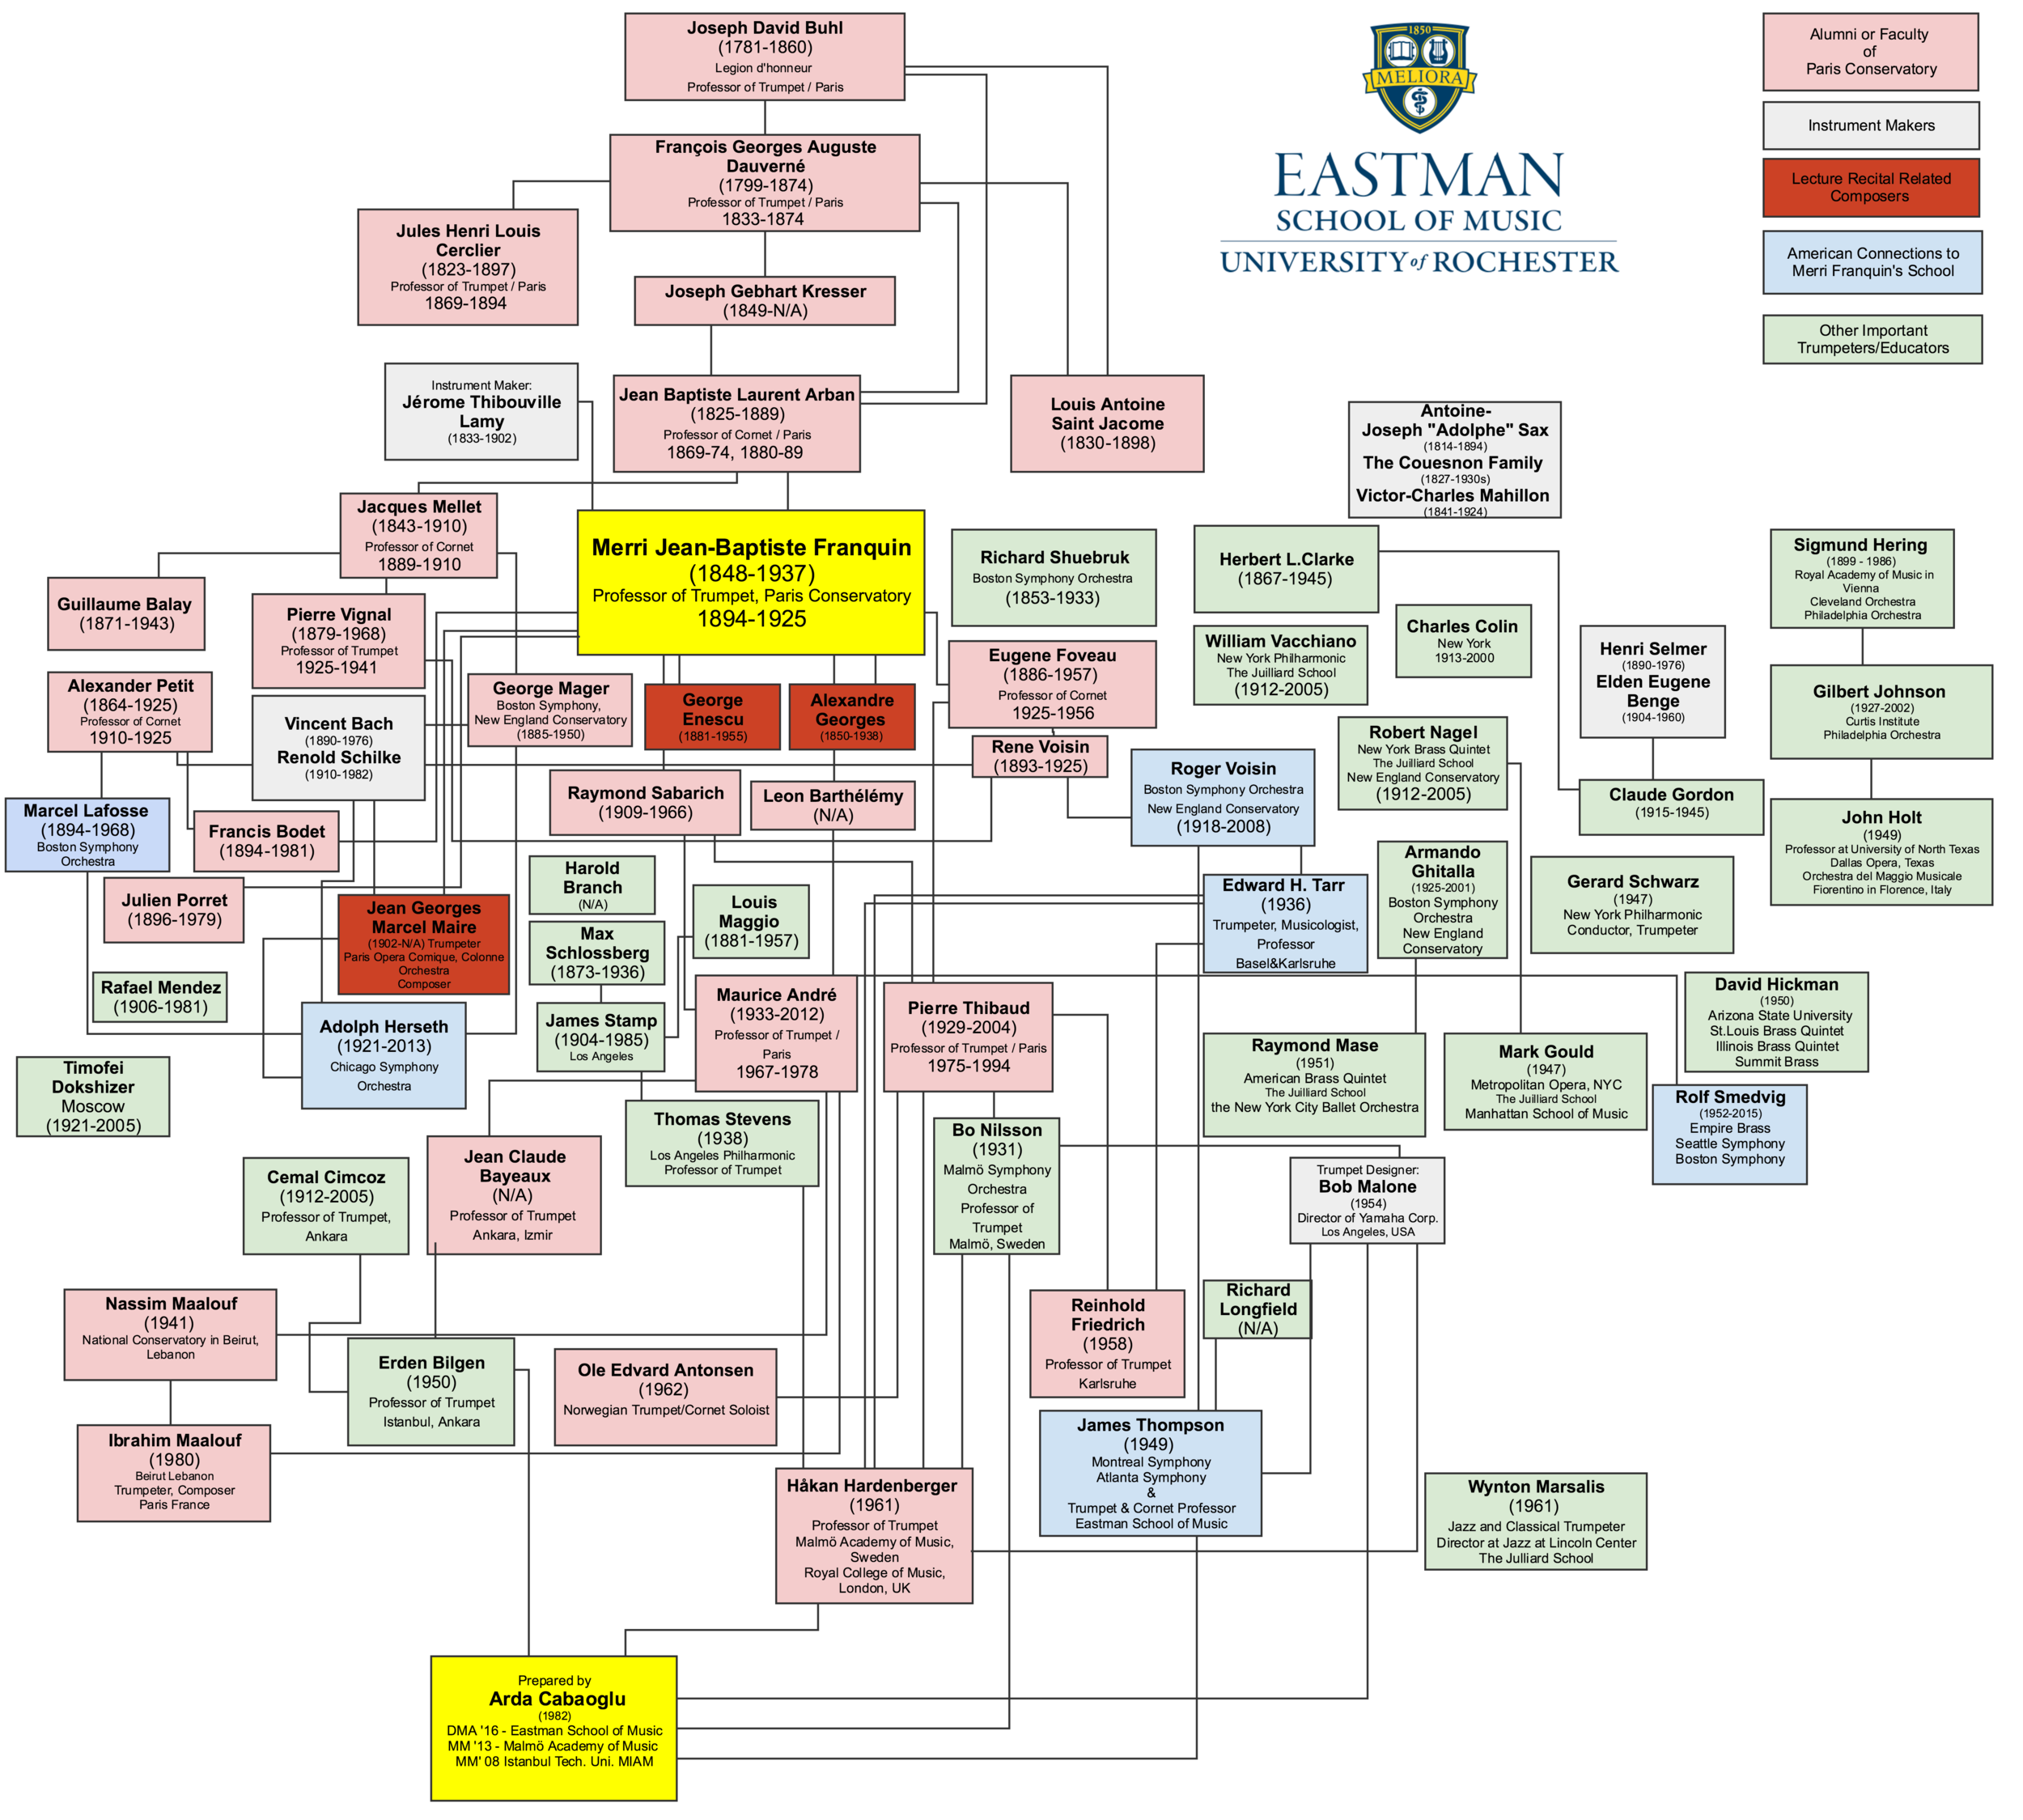 """Arda Cabaoglu's professional ancestral lineage tree as a performer and educator. This map is taken from his doctoral lecture recital at Eastman School of Music, which was titled """"Merri Franquin (1848-1934) of Paris Conservatory (1894-1925): Background and Legacy""""."""